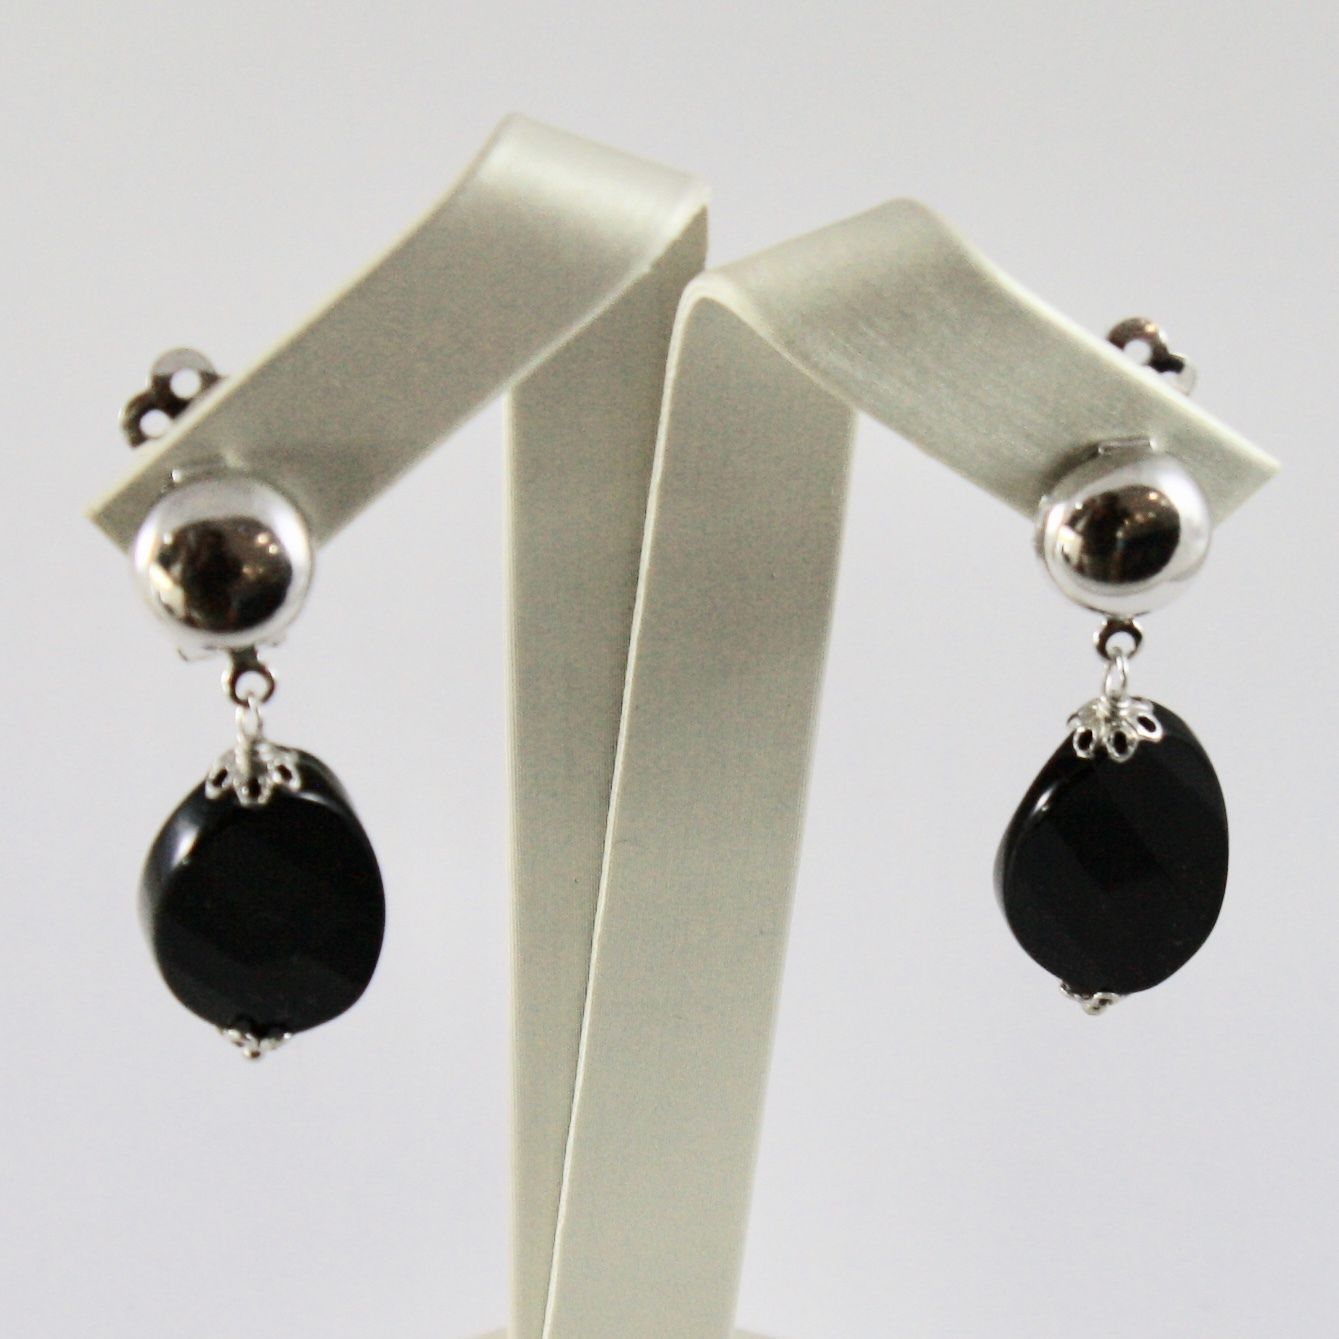 EARRINGS SILVER 925 WITH ONYX OVAL FACETED AND CLOSING CLIP WITHOUT HOLE